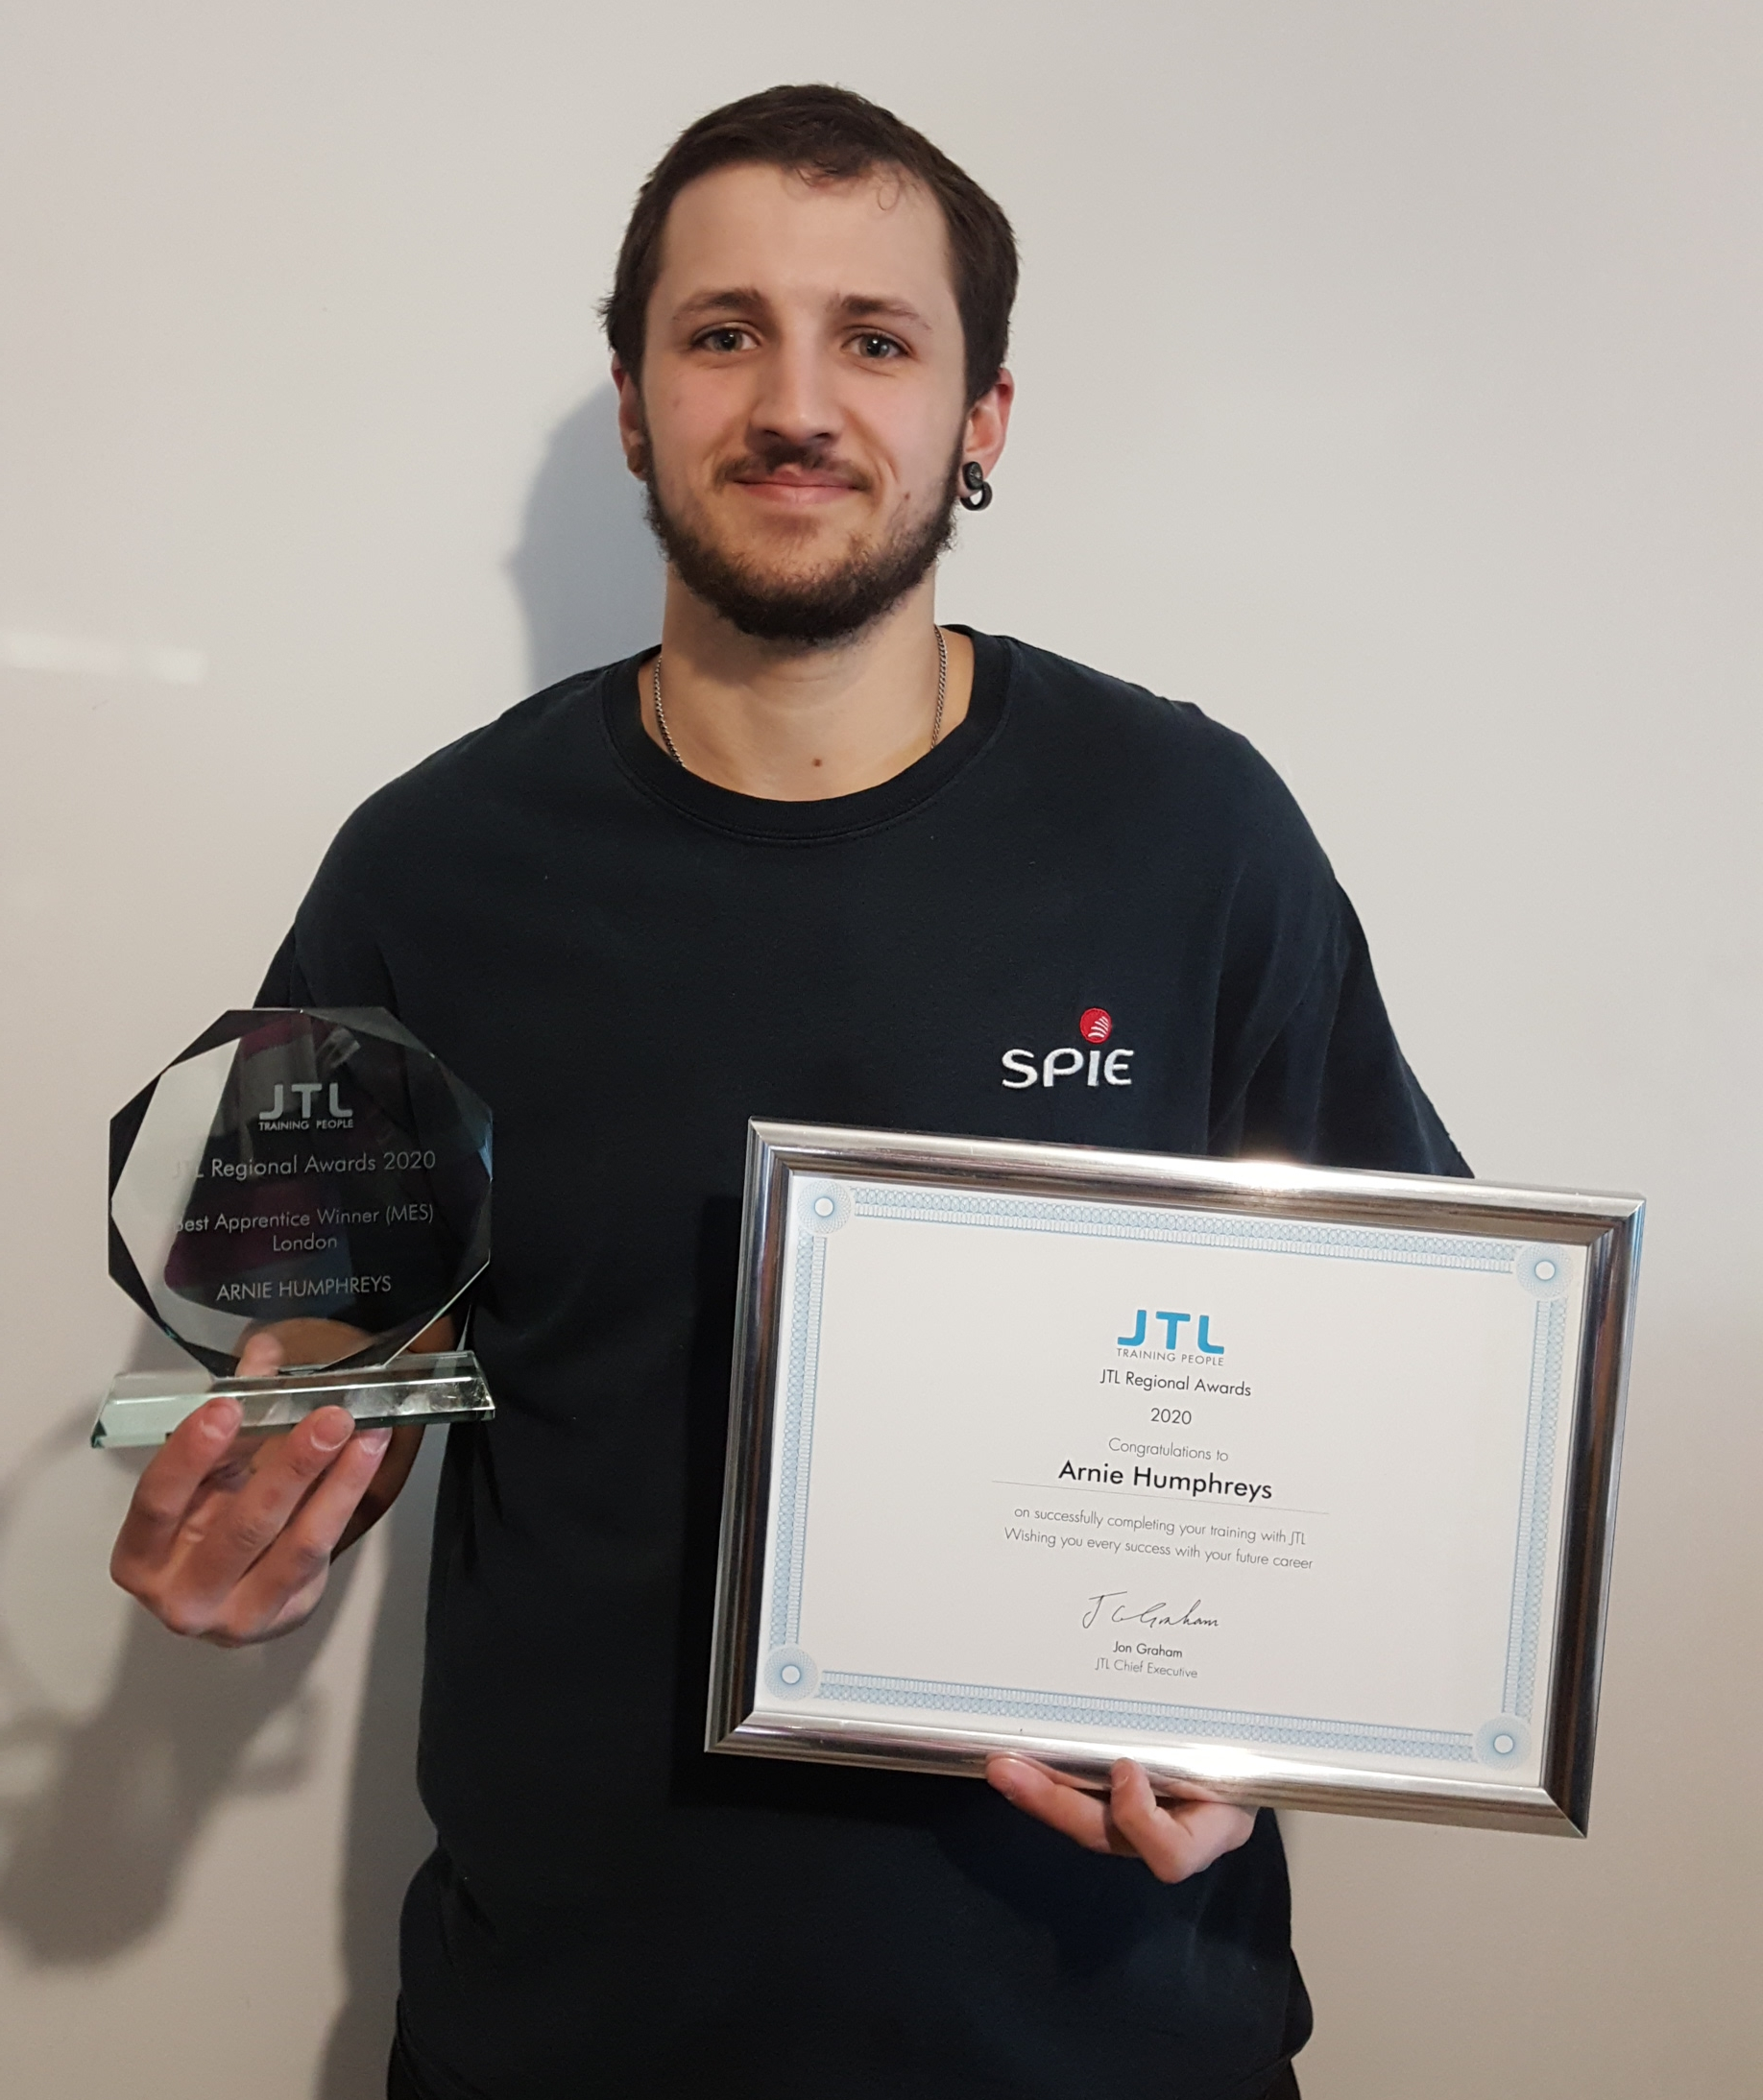 Arnie Humphreys Named JTL's MES Apprentice Of the Year In London